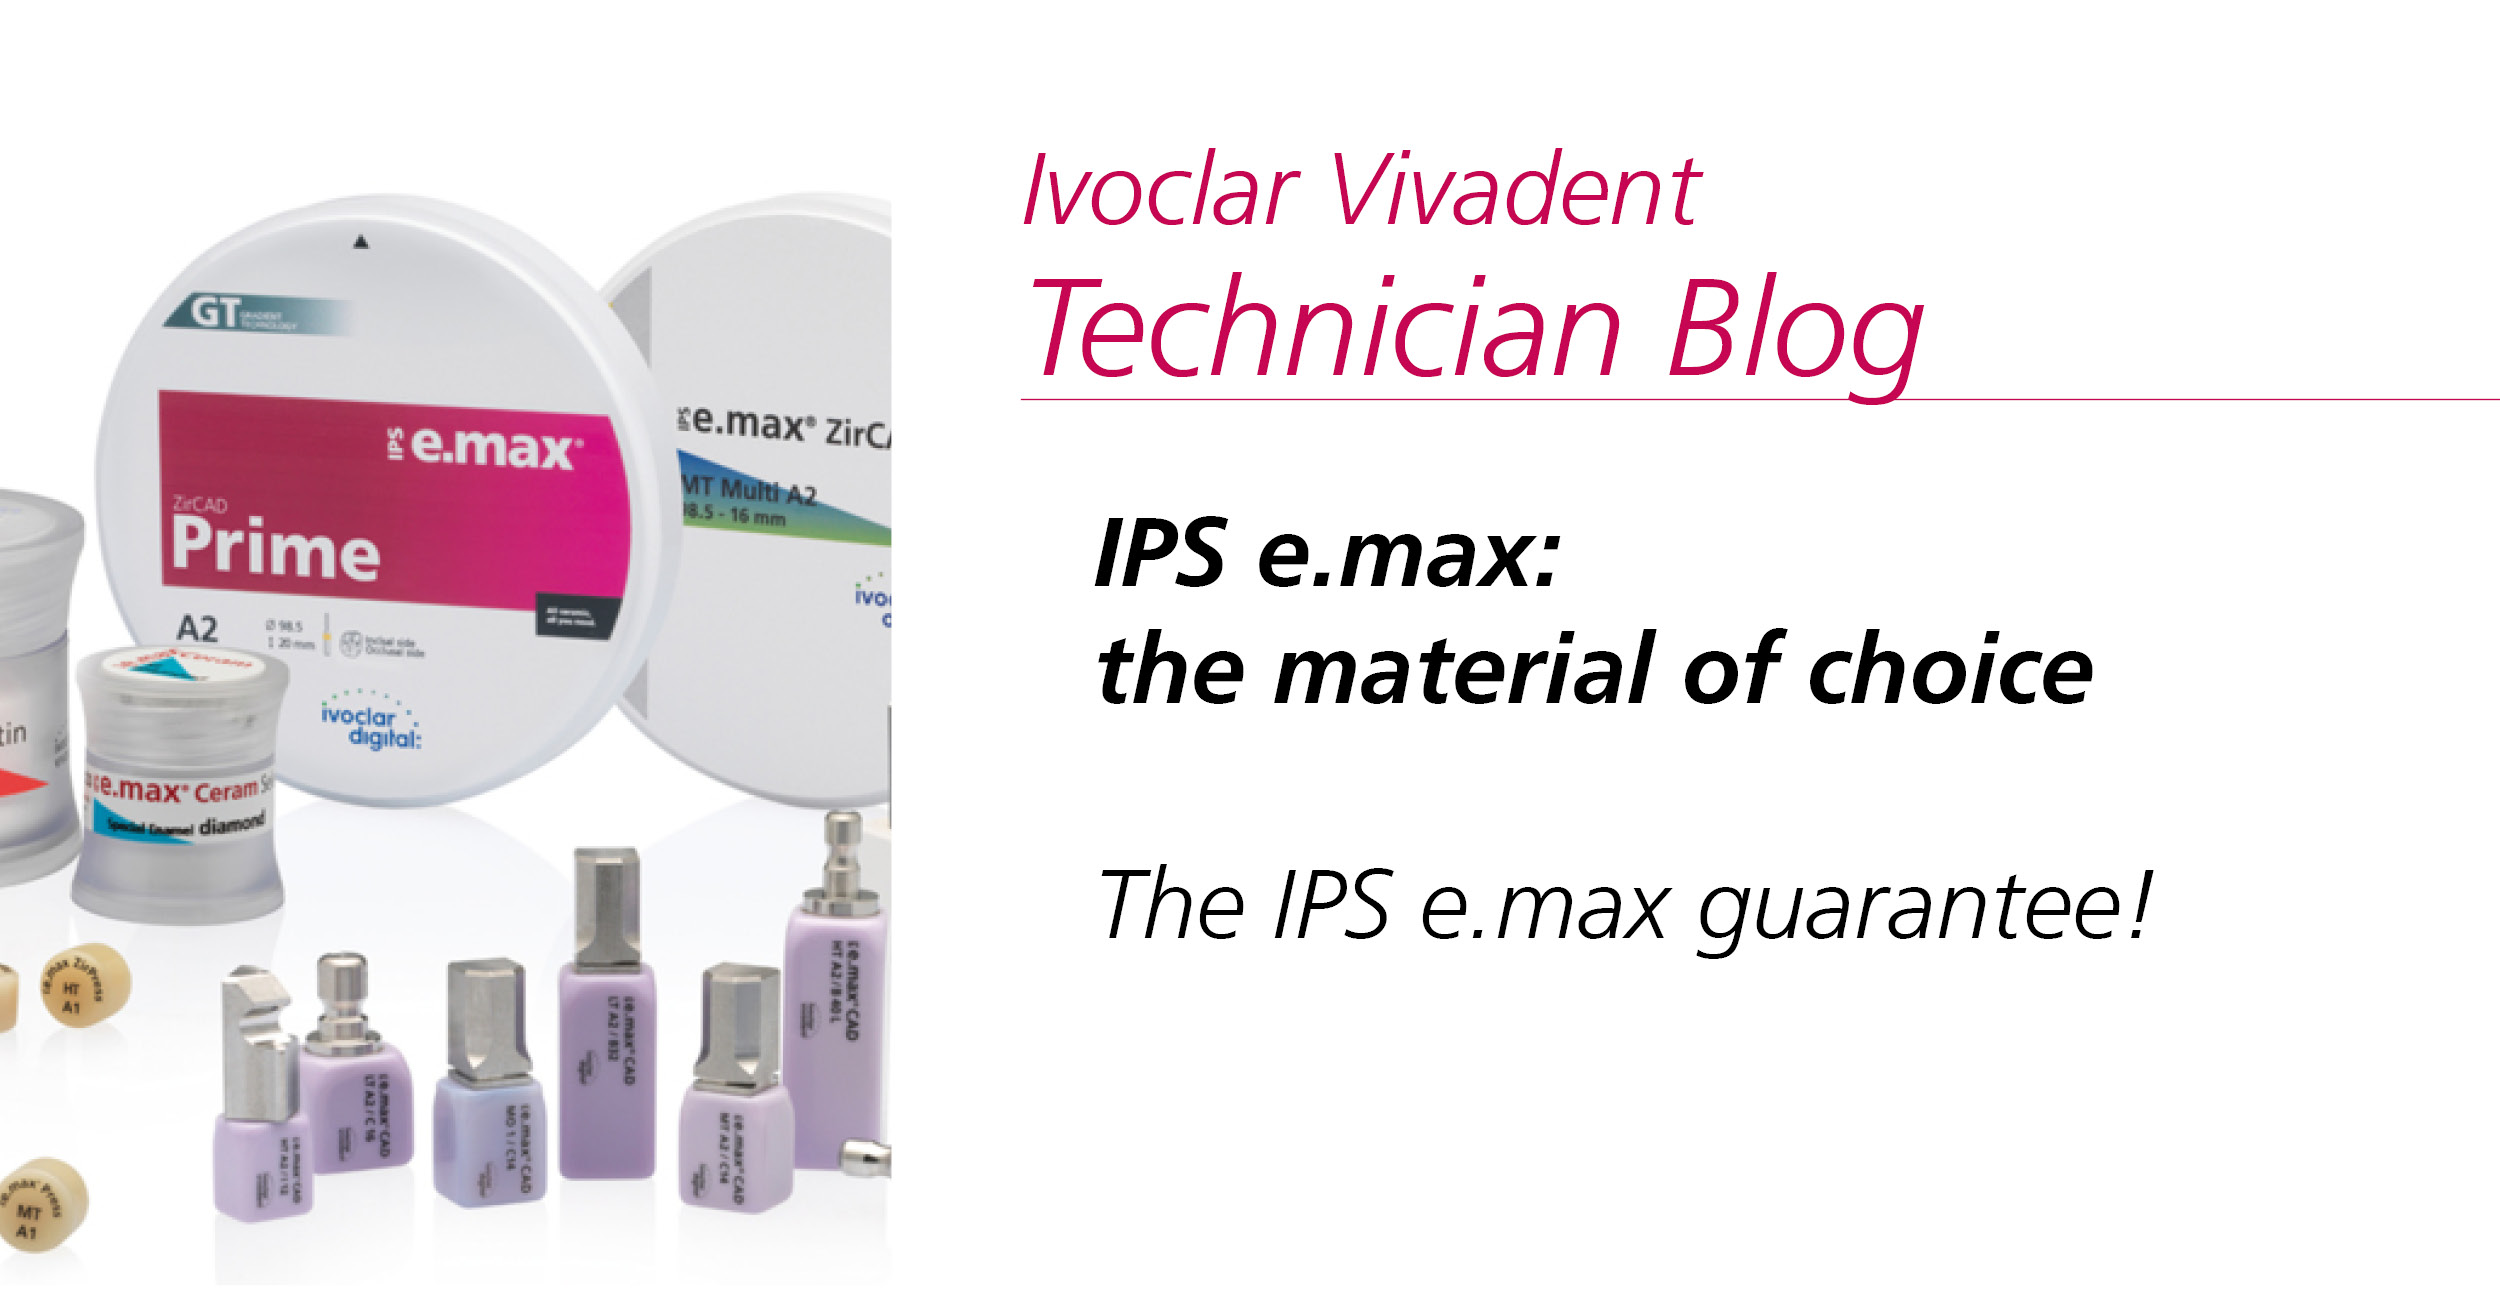 IPS e.max: the material of choice